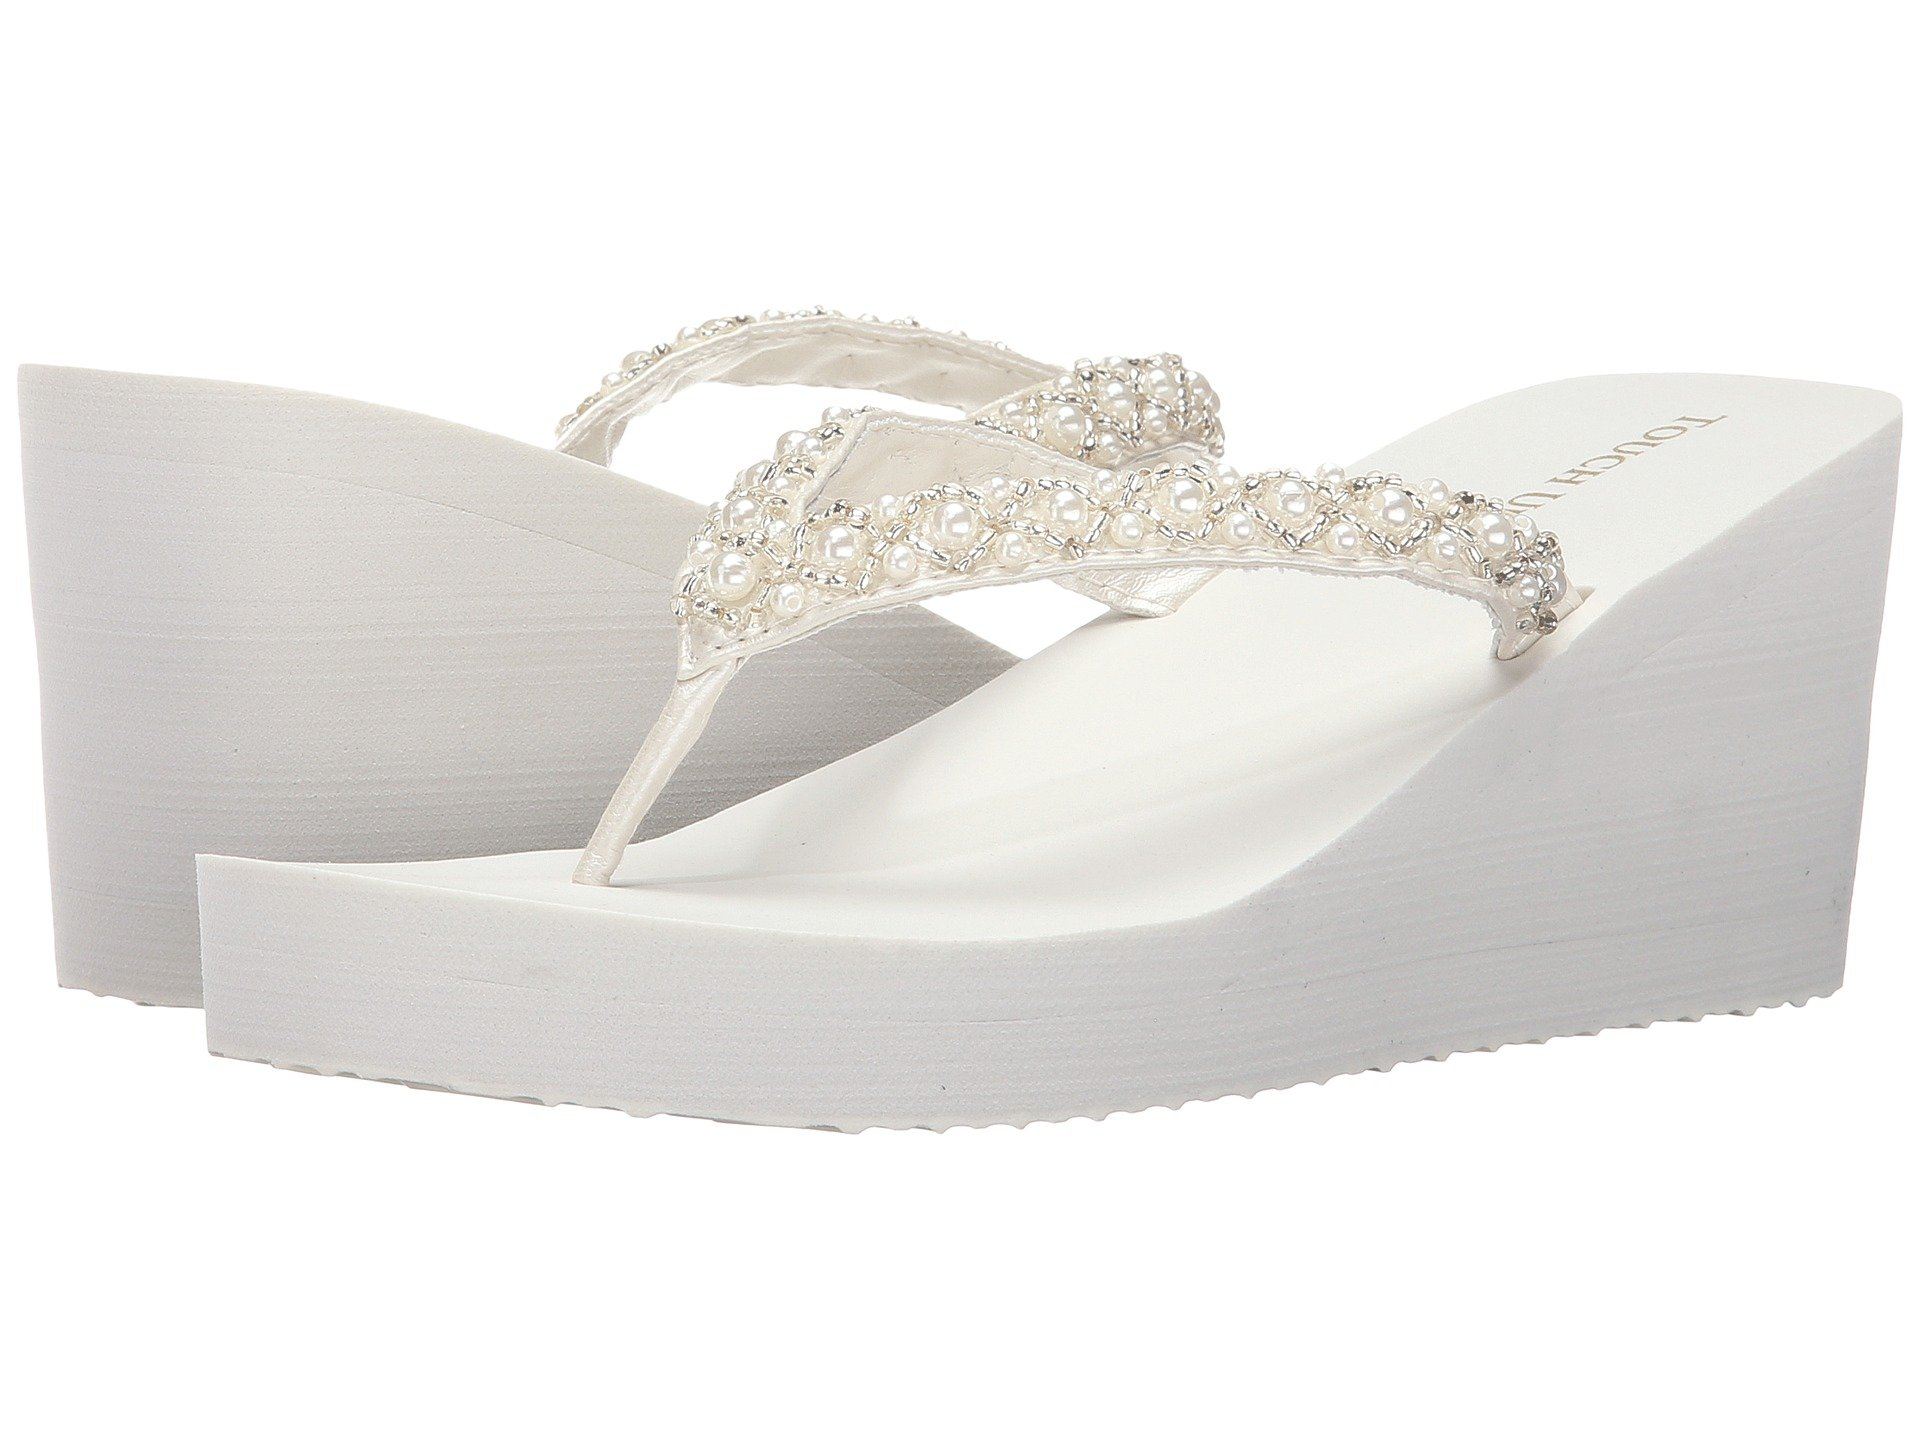 White Wedges, Shoes, White | Shipped Free at Zappos